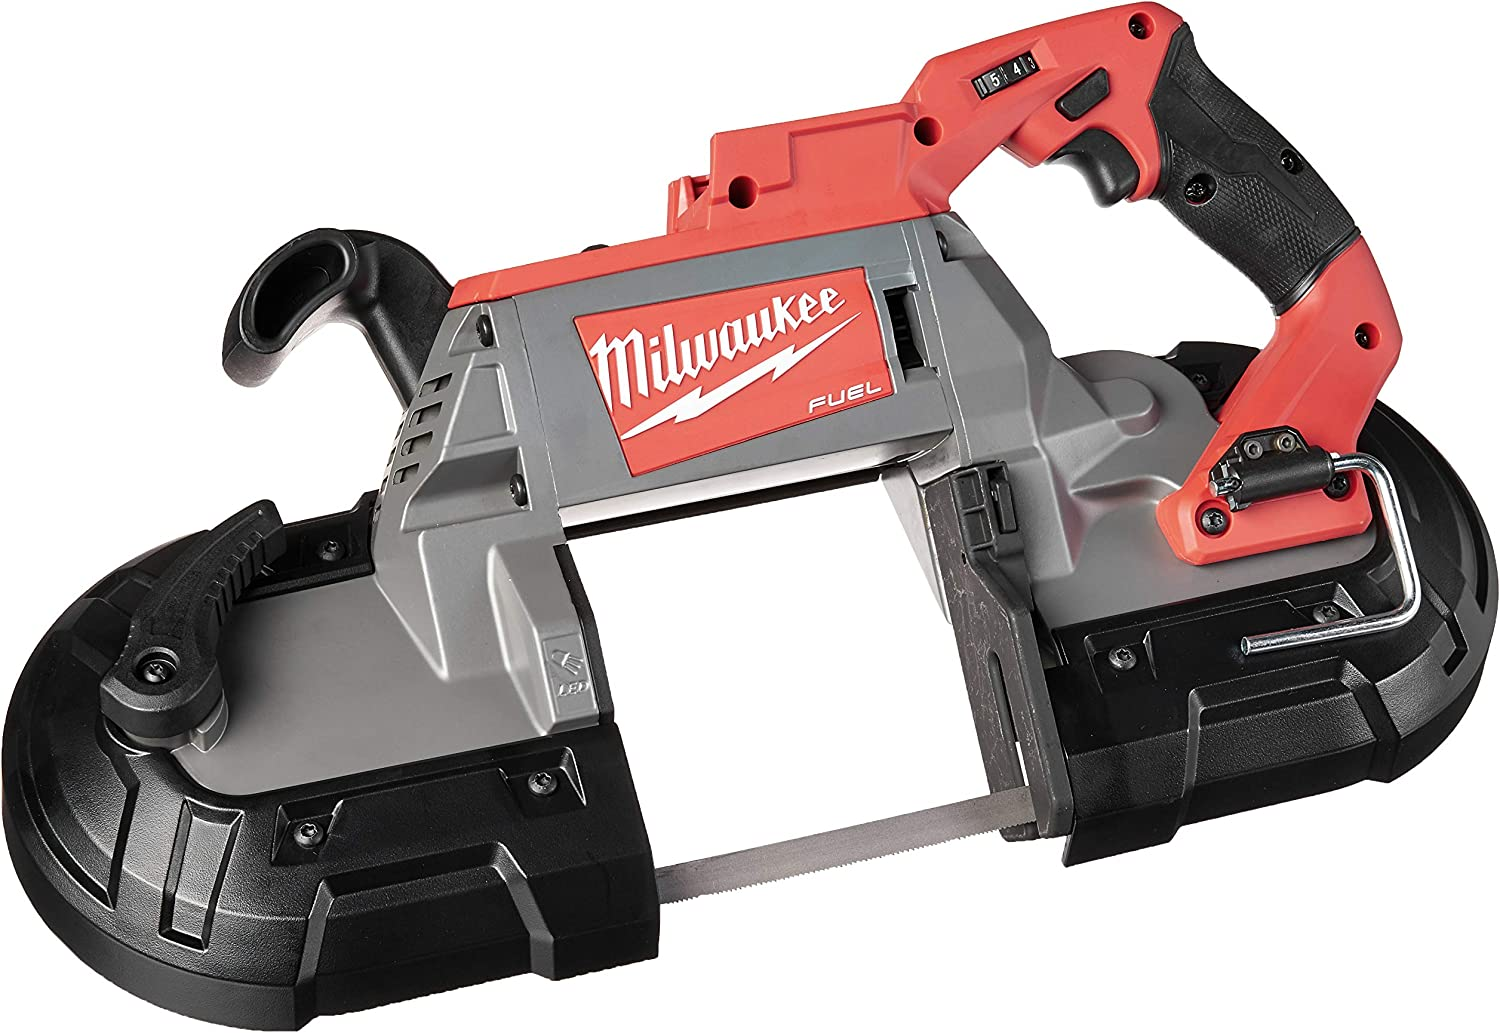 Milwaukee 2729-20 Deep-Cut Band Saw